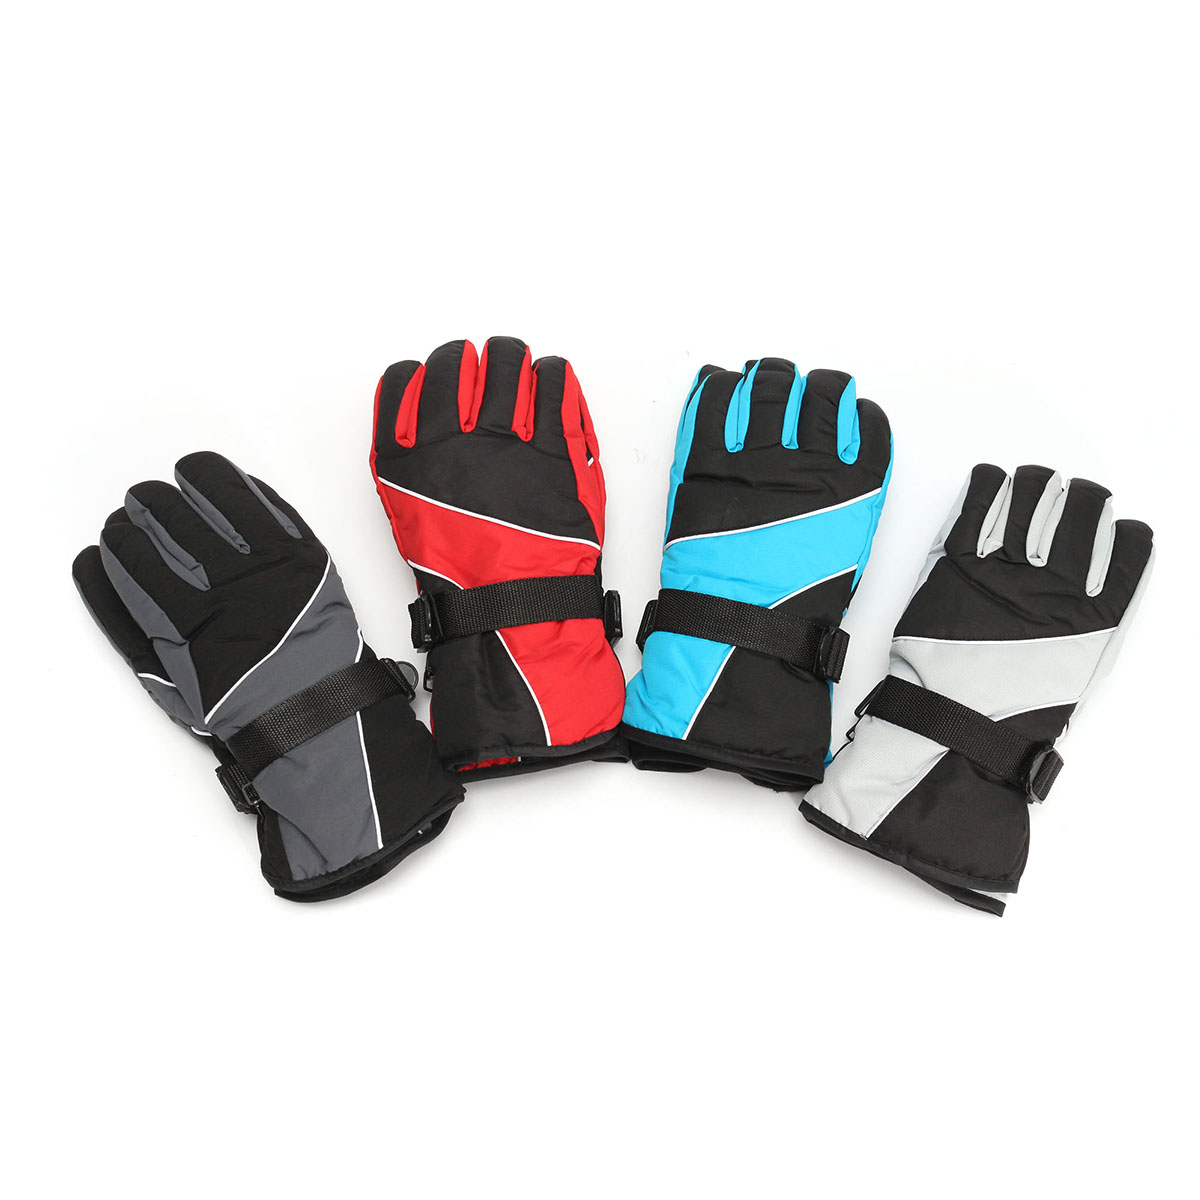 Pair Winter Motorcycle Bike Racing Skiing Skating Gloves Waterproof Windproof